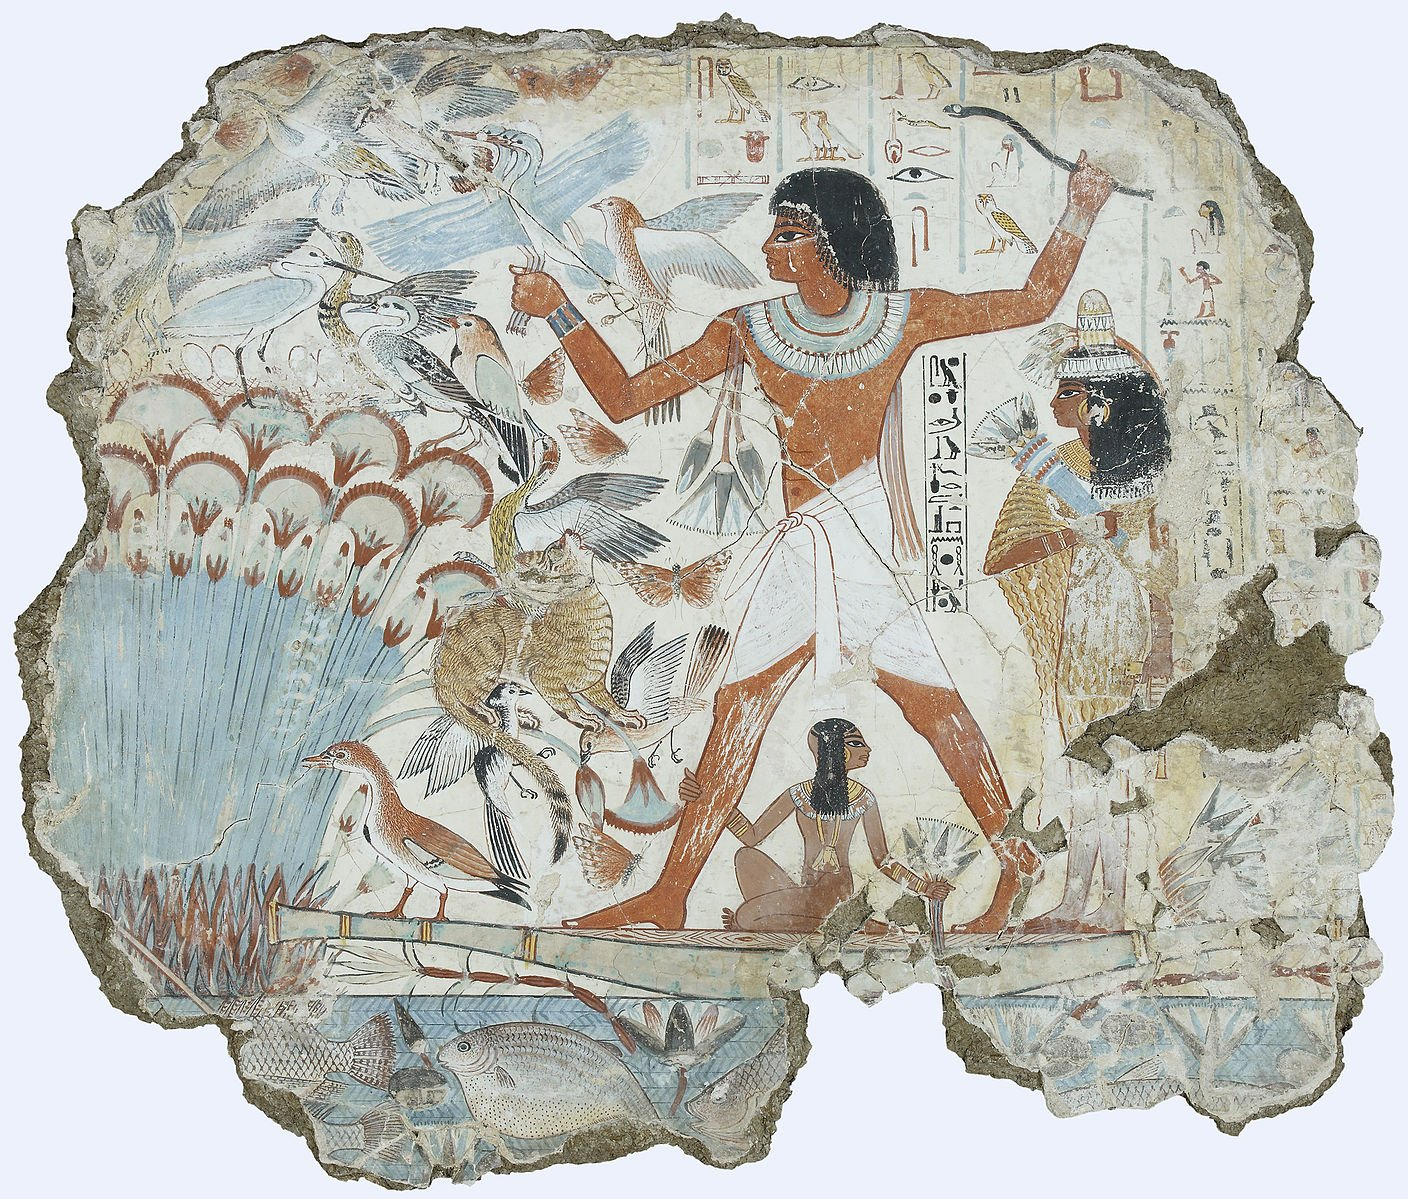 Tomb of Nebamun